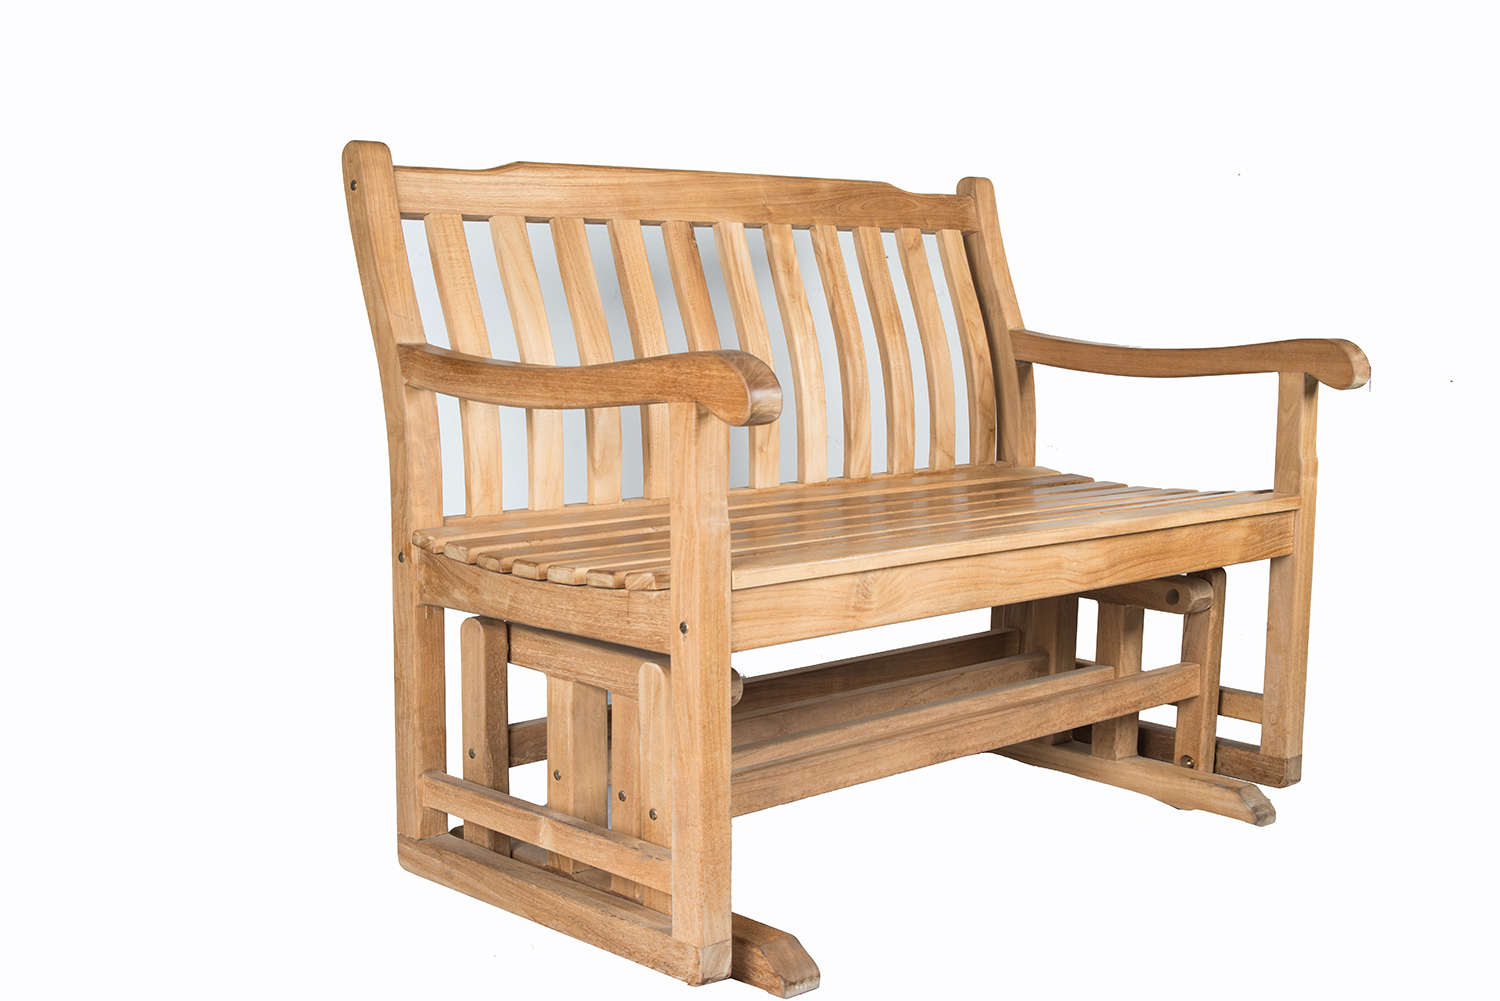 Classic Adirondack Glider Benches Pertaining To Current Shop For Dewata Classic Teak Wood B+ Class Glider Bench (Gallery 19 of 30)